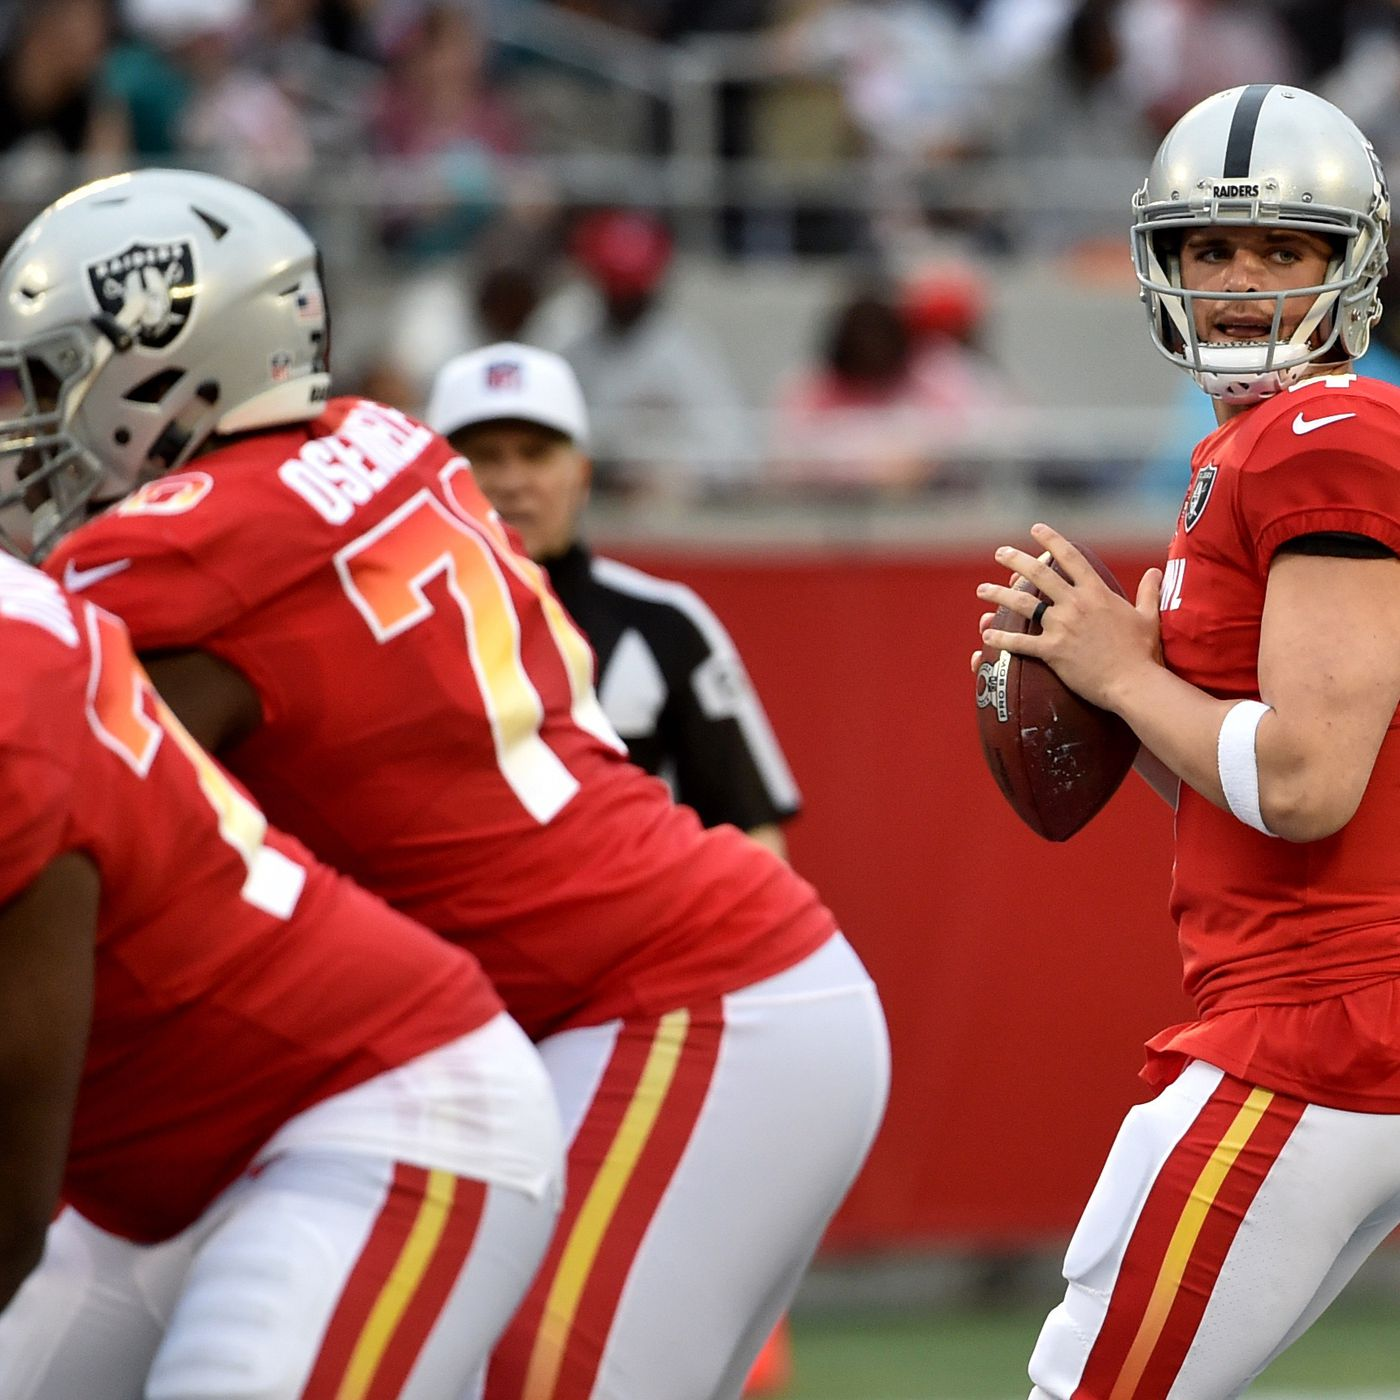 premium selection 2cb59 4db32 Pro Bowl 2018 live results: Highlights from AFC's comeback ...